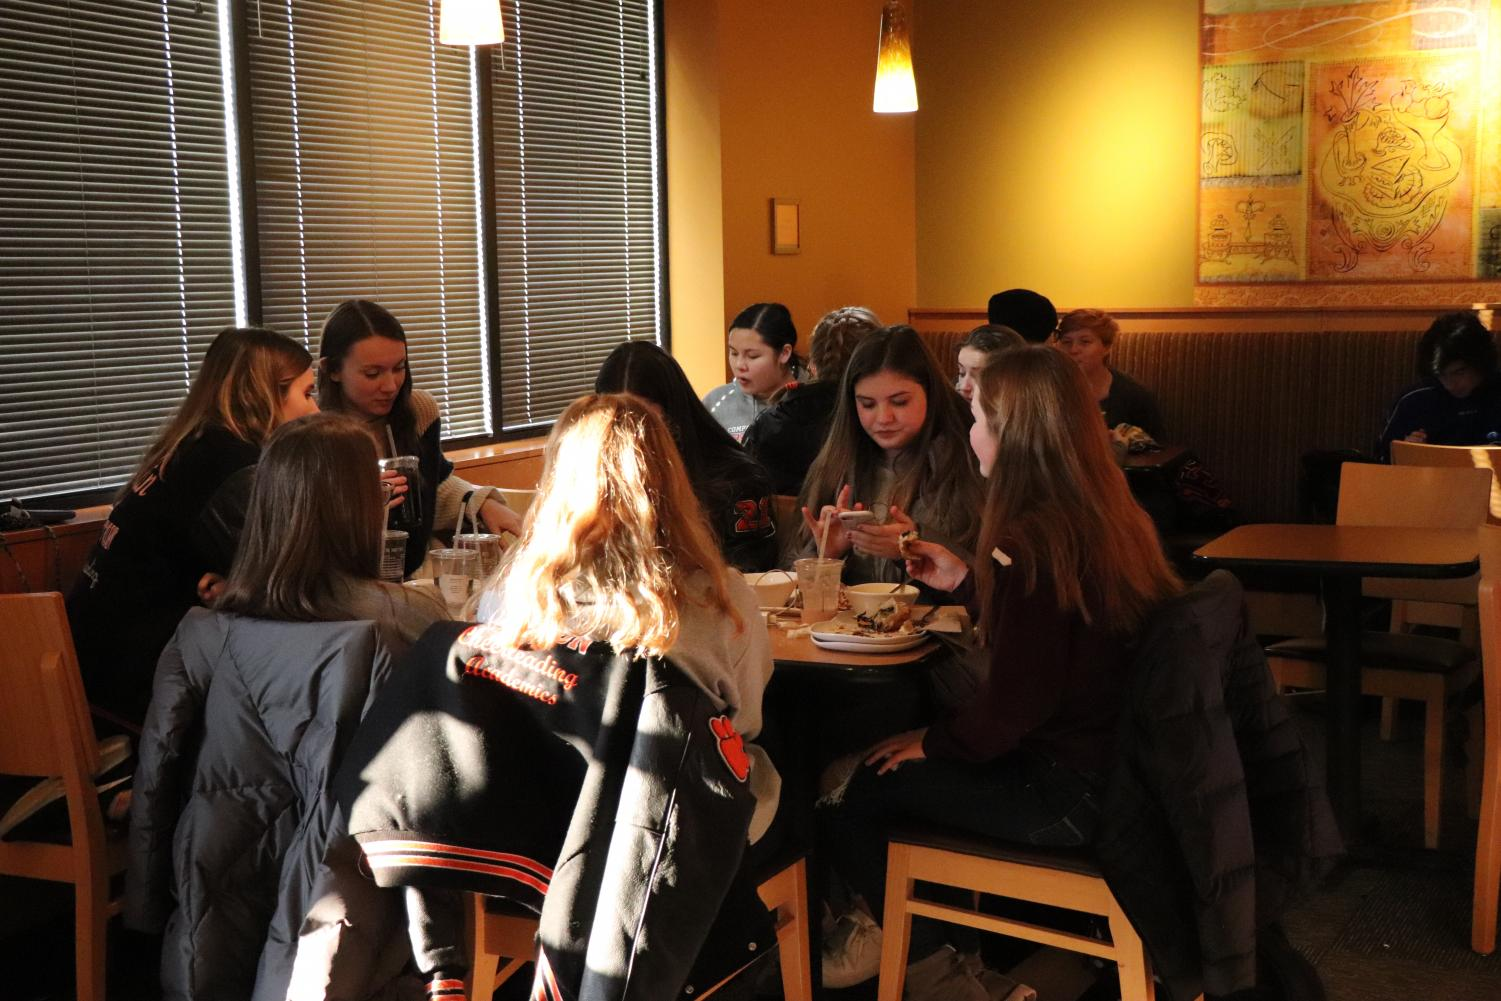 Sophomores begin studying for their exams on Jan. 14. FHS Publications held their annual Panera fundraiser on the first day of exam week.